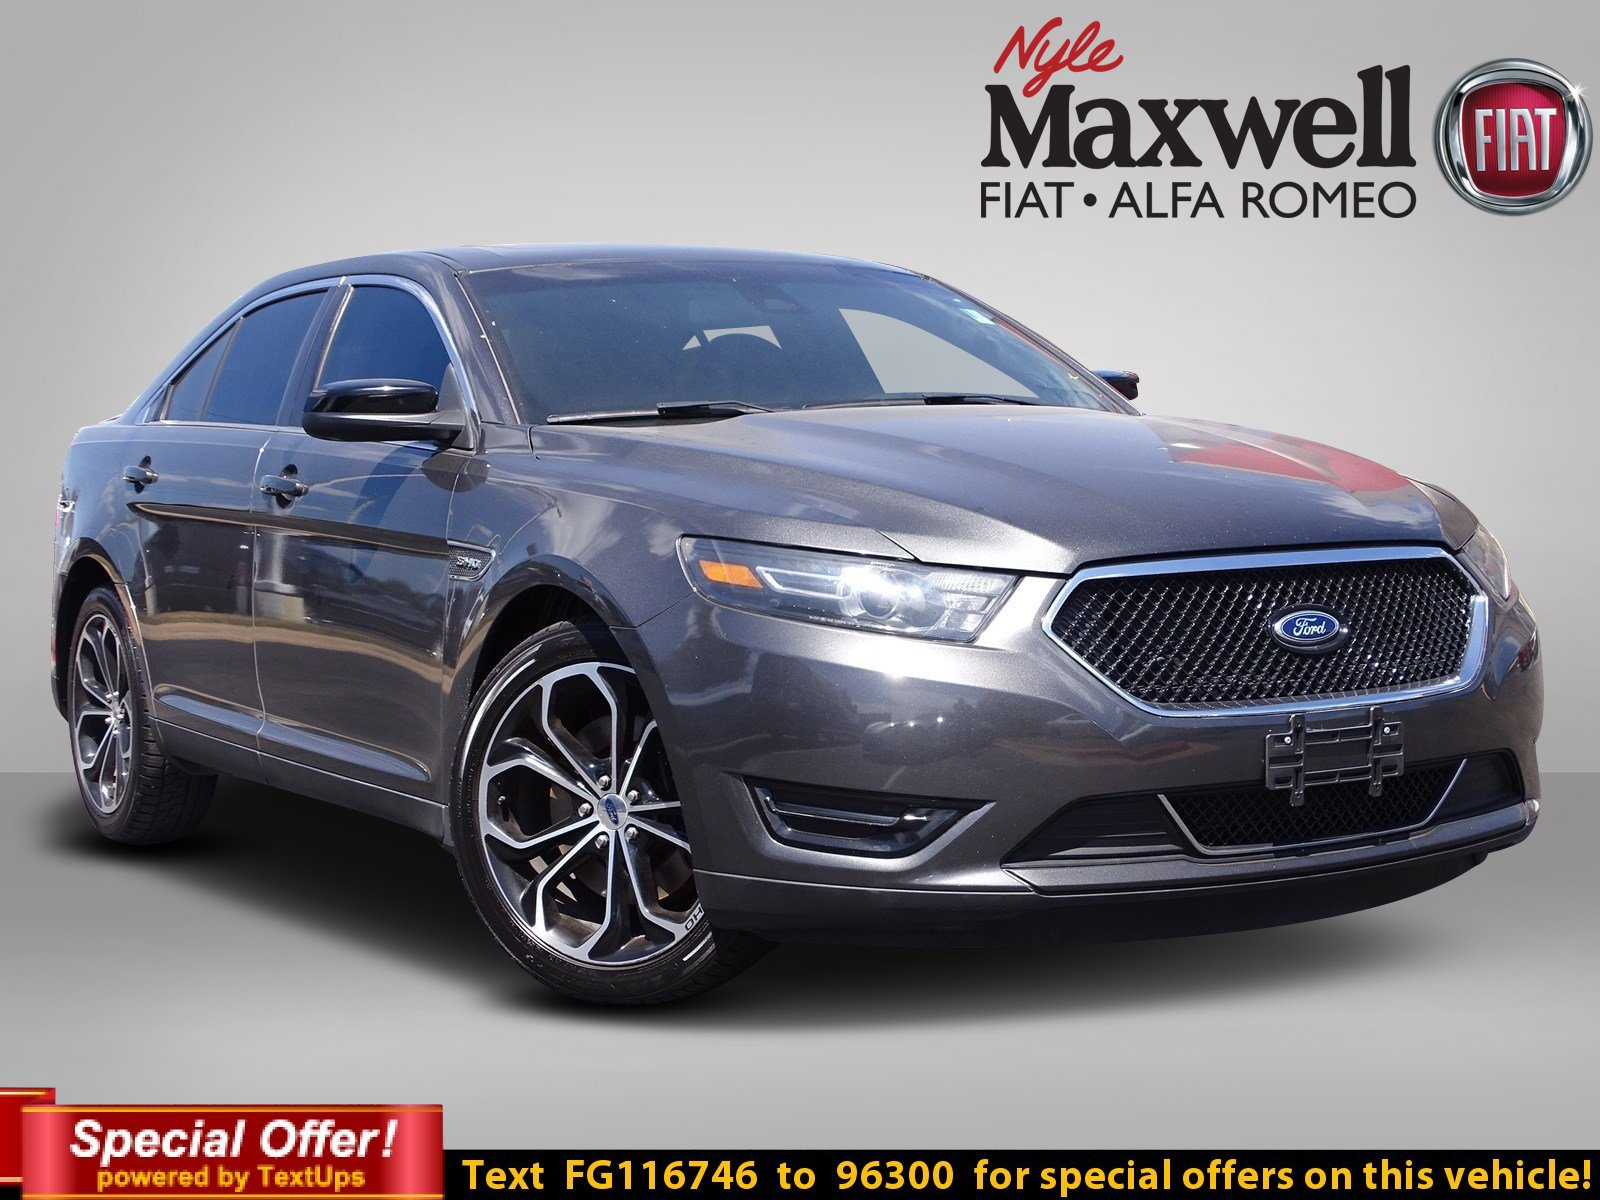 Certified Pre-Owned 2015 Ford Taurus SHO